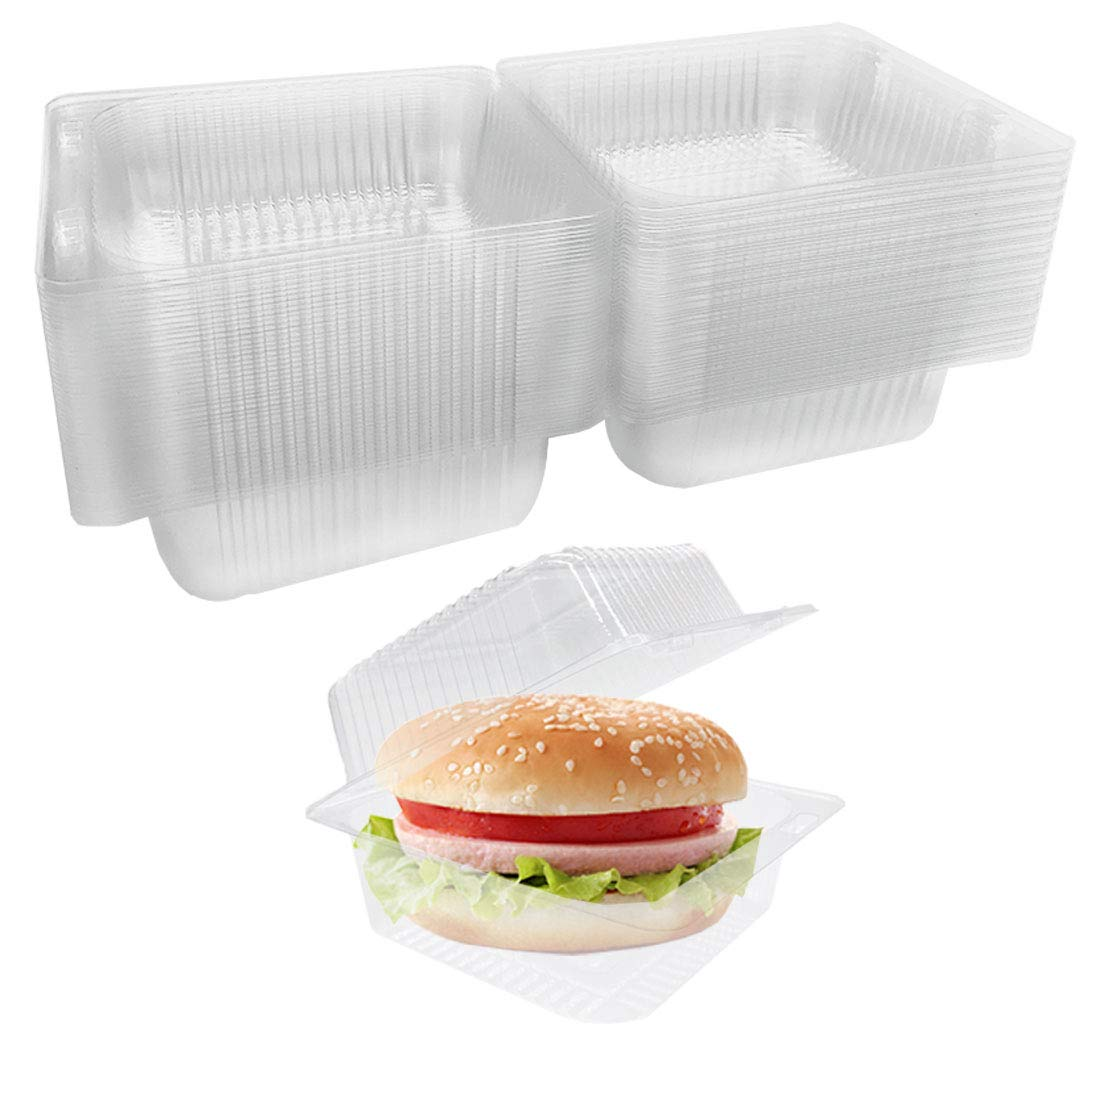 50 Pcs Clear Plastic Take Out Containers,Square Hinged Food Cake Slice Container,Dart Containers Disposable Clamshell Dessert Container with Lids for Food,Salad,Sandwiches,Hamburger and Fruits